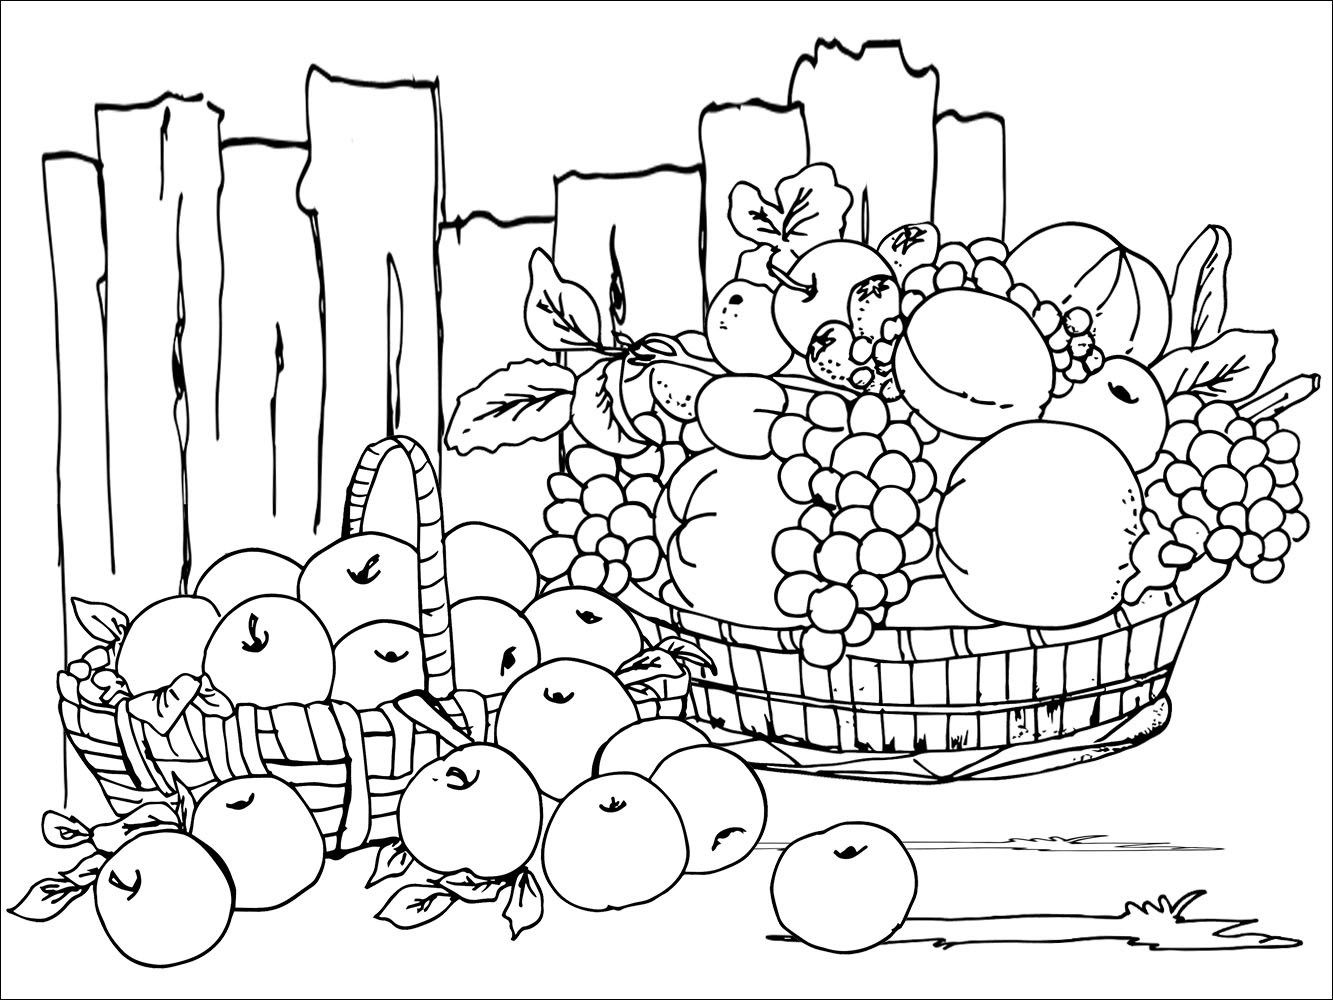 Harvest Festival Colouring Sheet Coloring Sheets Free Coloring